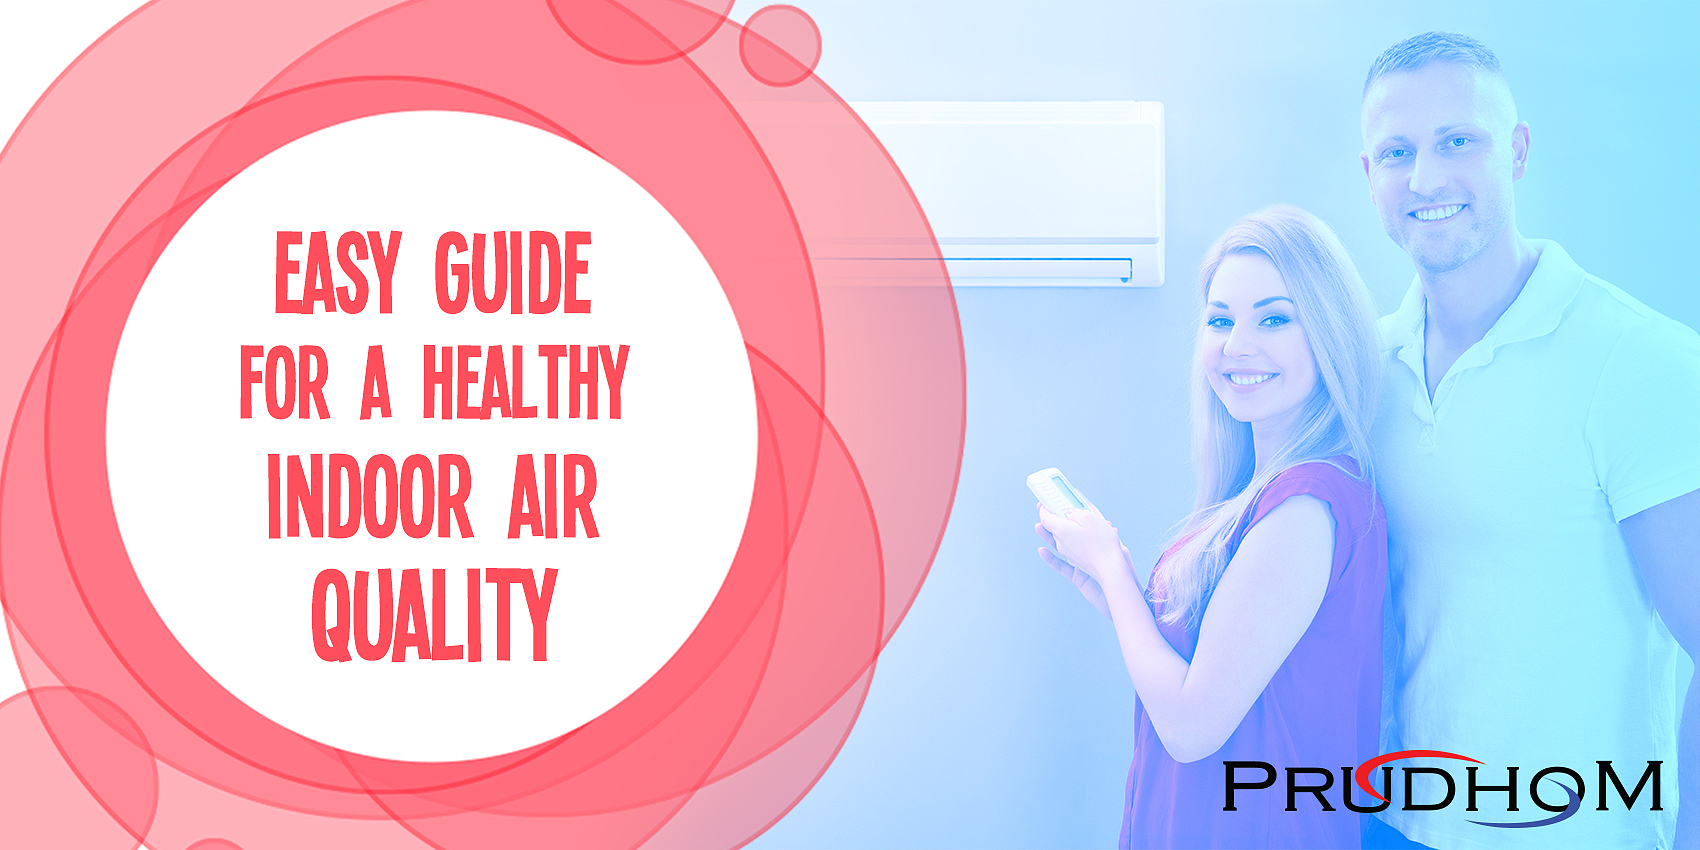 Easy Guide for a Healthy Indoor Air Quality in Edmond, OK